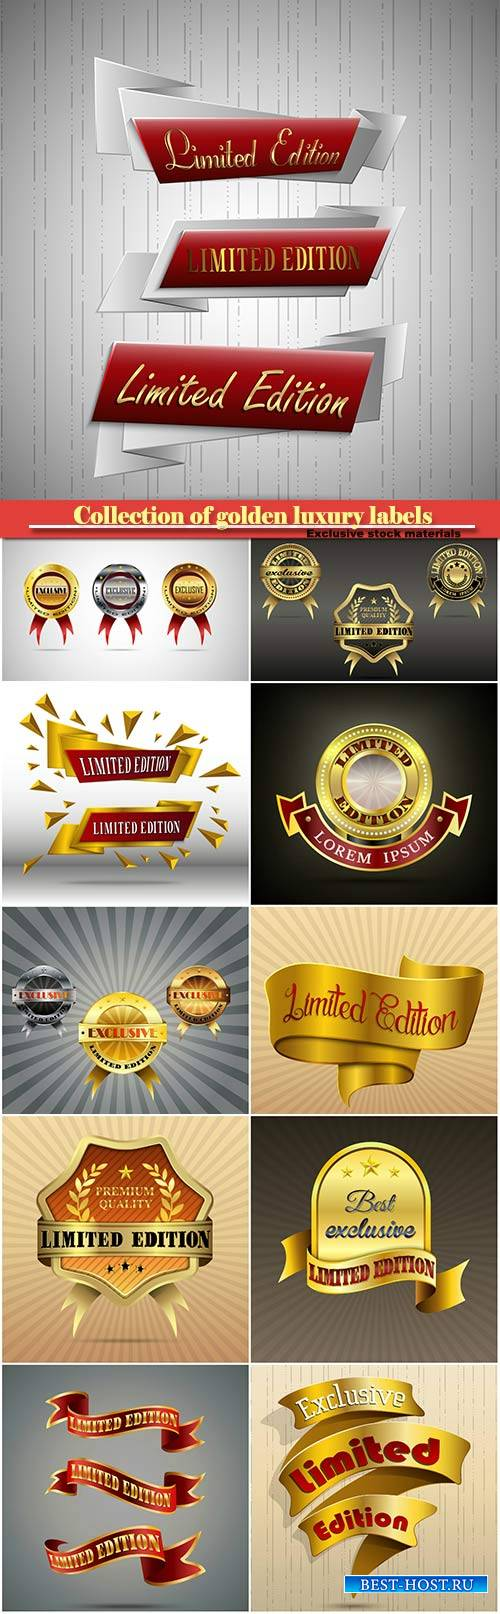 Collection of golden luxury labels in vector